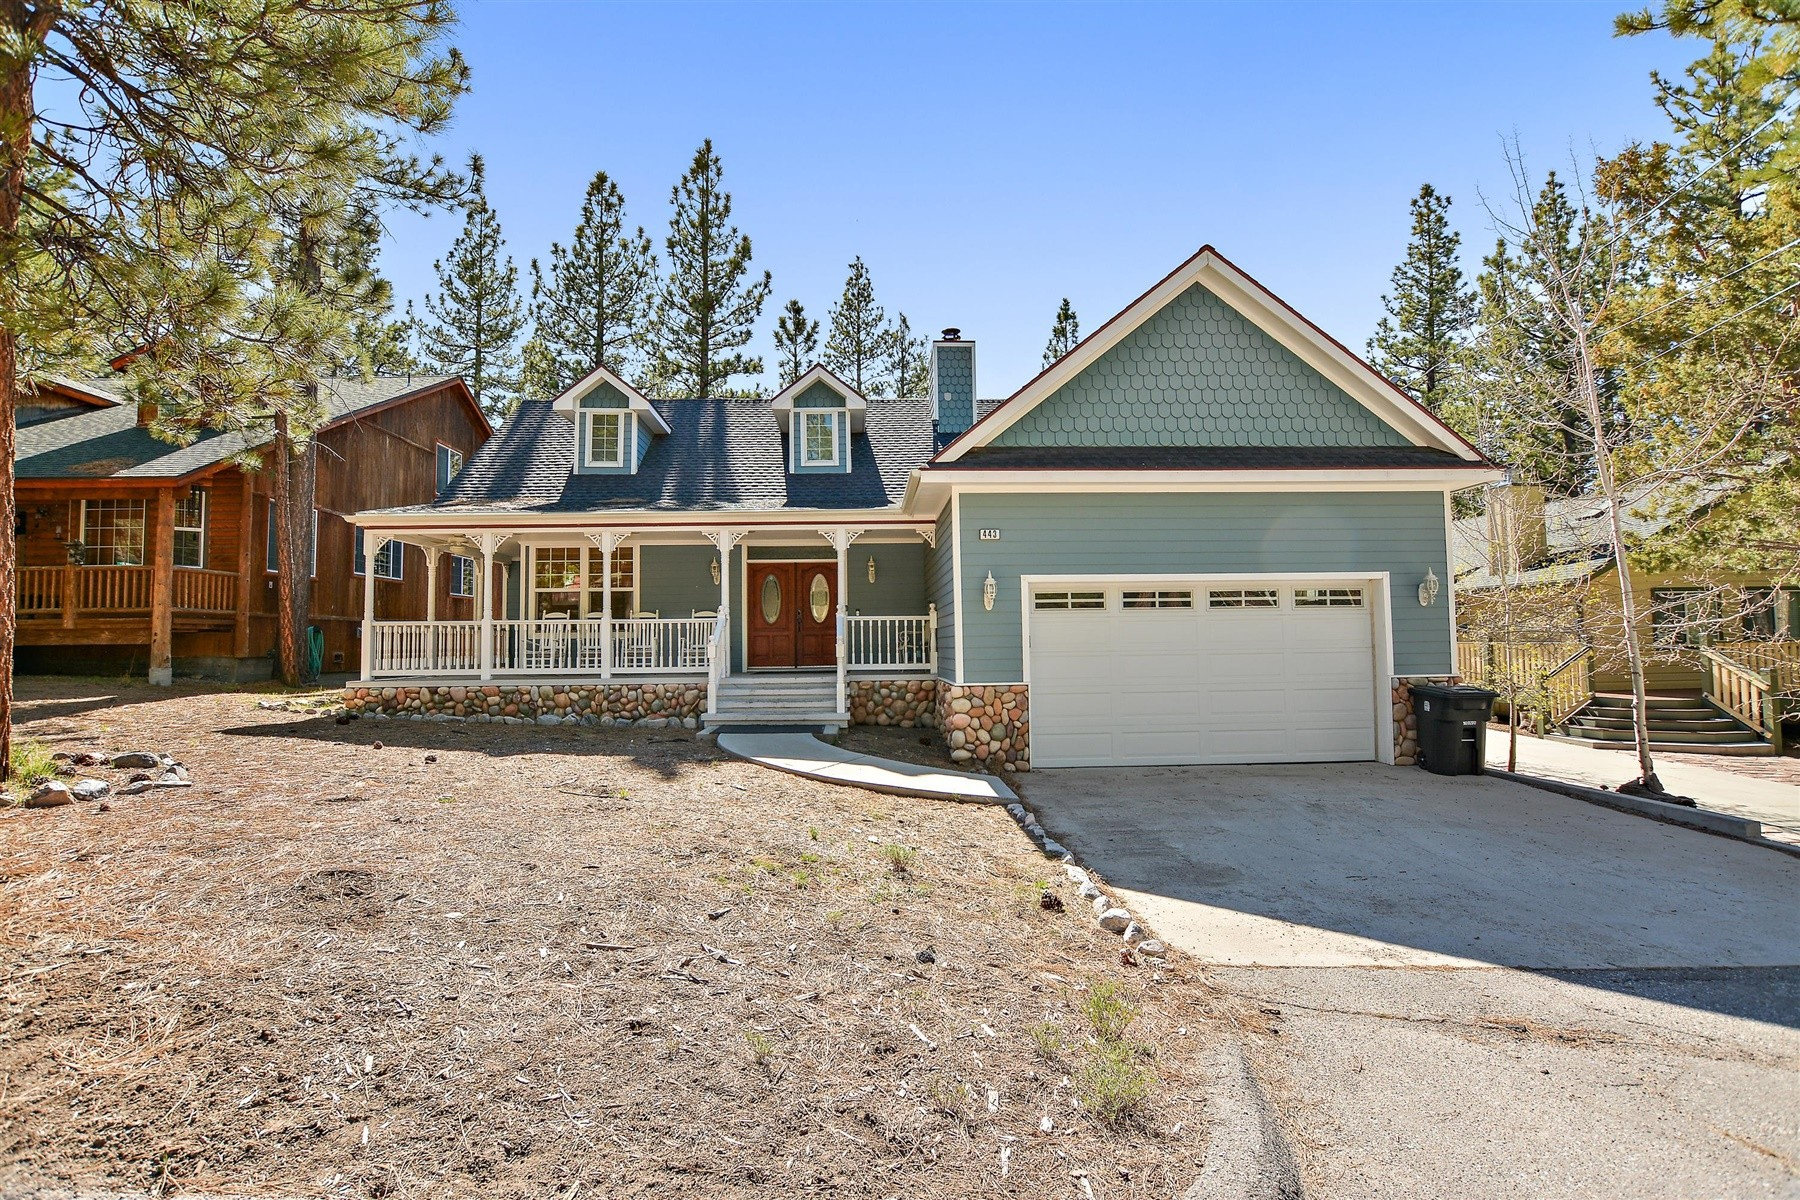 Single Family Homes for Active at Big Bear City, California 92314 443 Dorset Big Bear City, California 92314 United States